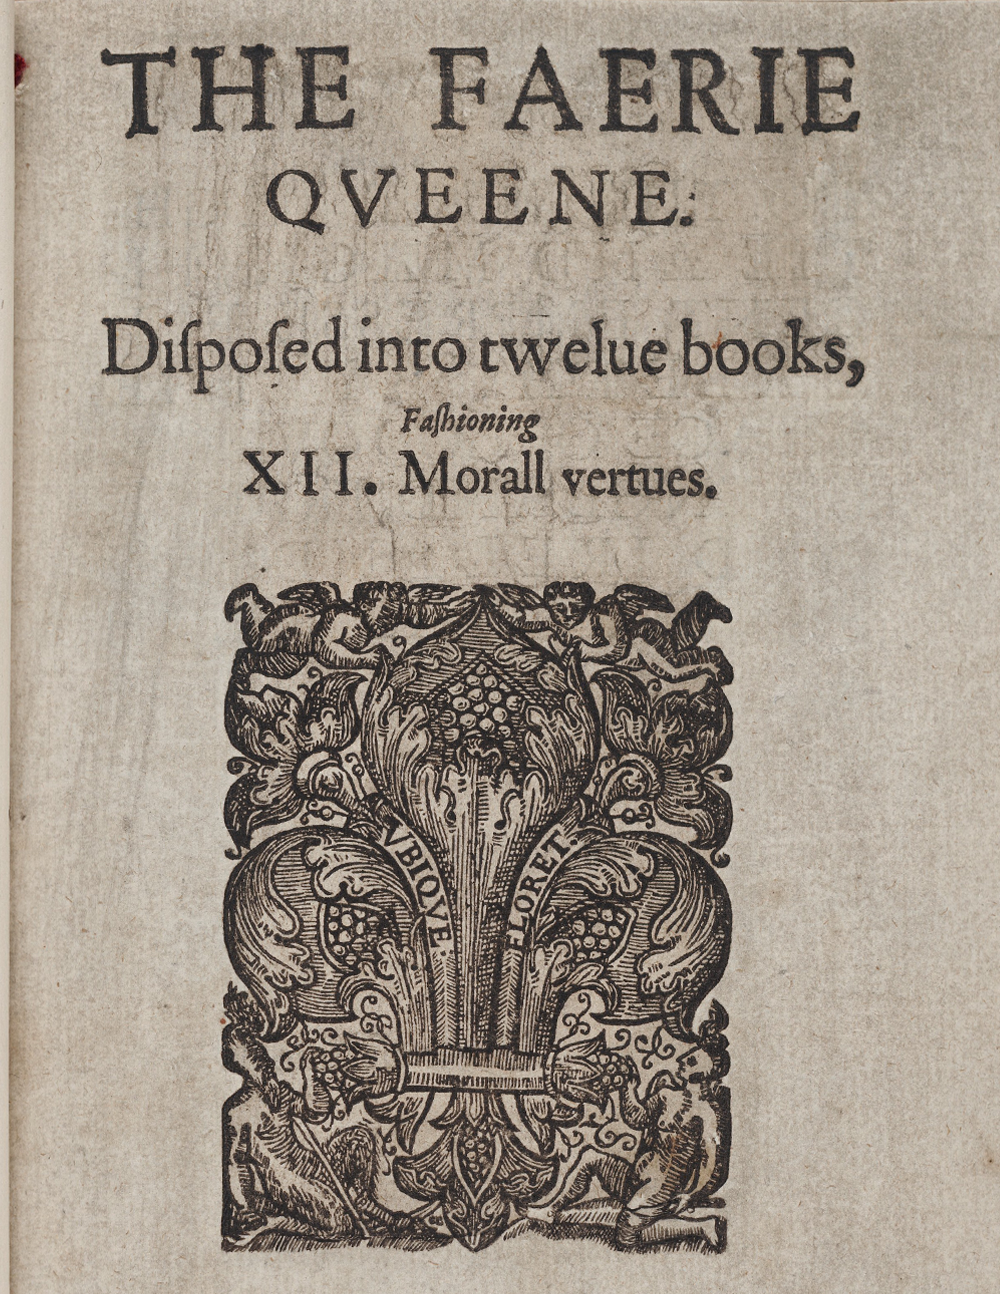 From Edmund Spenser, The faerie queene : disposed into twelue bookes, fashioning XII morall vertues (London, 1590). Courtesy of the Beinecke Rare Book and Manuscript Library. Appears: Writing